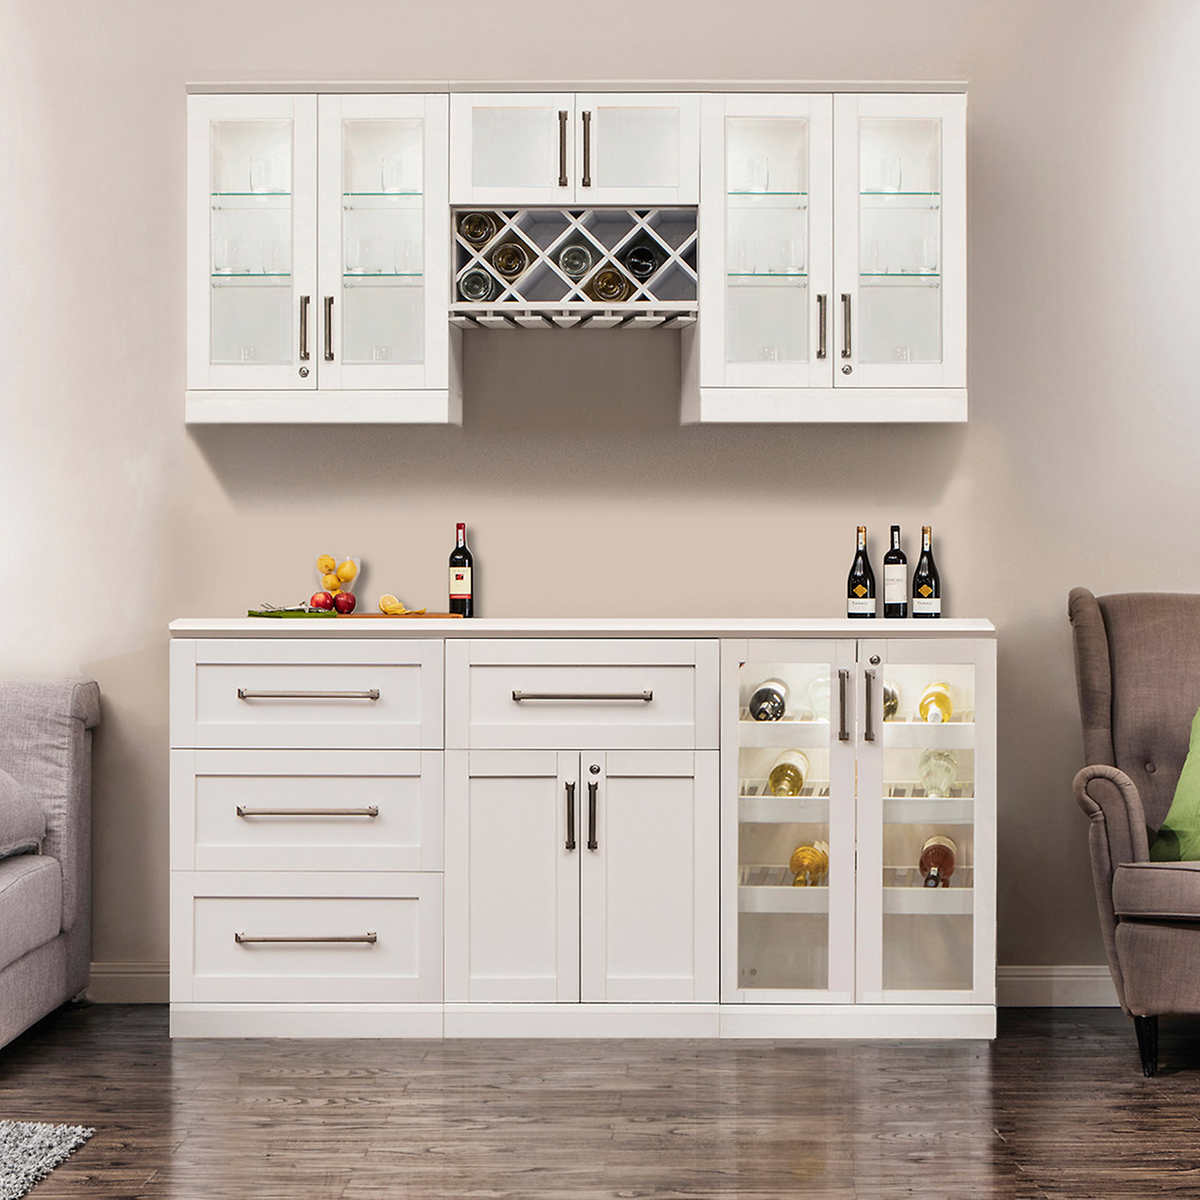 cabinets costco kitchen cabinets Home Wine Bar 7 piece Cabinetry Set by NewAge Products